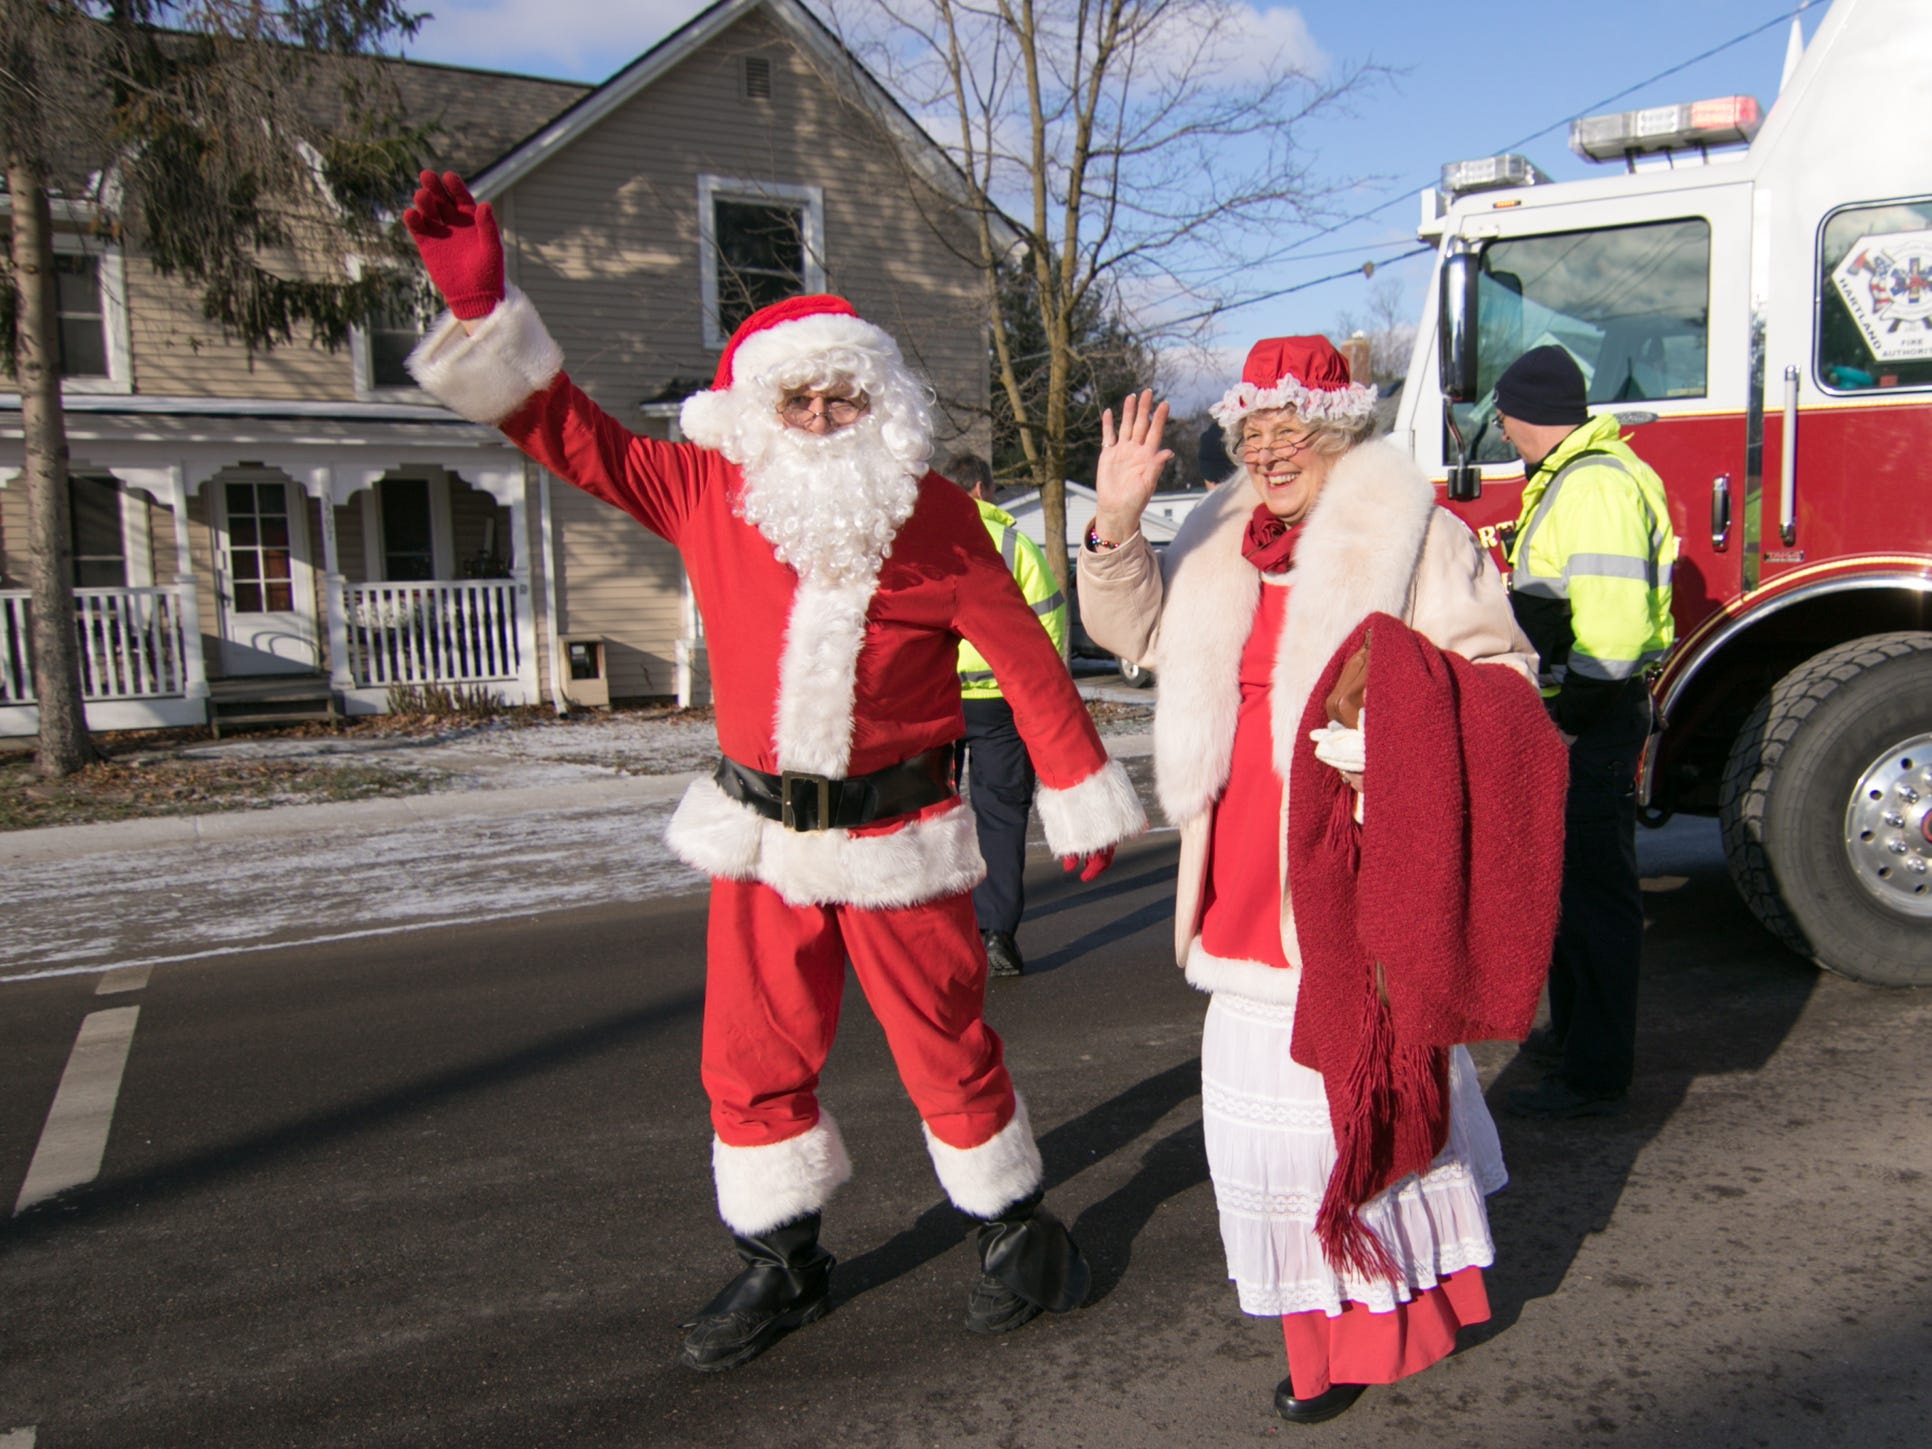 Santa and Mrs. Claus step down from a Hartland Area Fire engine, having been chauffeured by the department Saturday, Dec. 8, 2018 to Hartland's Polar Express Day event.